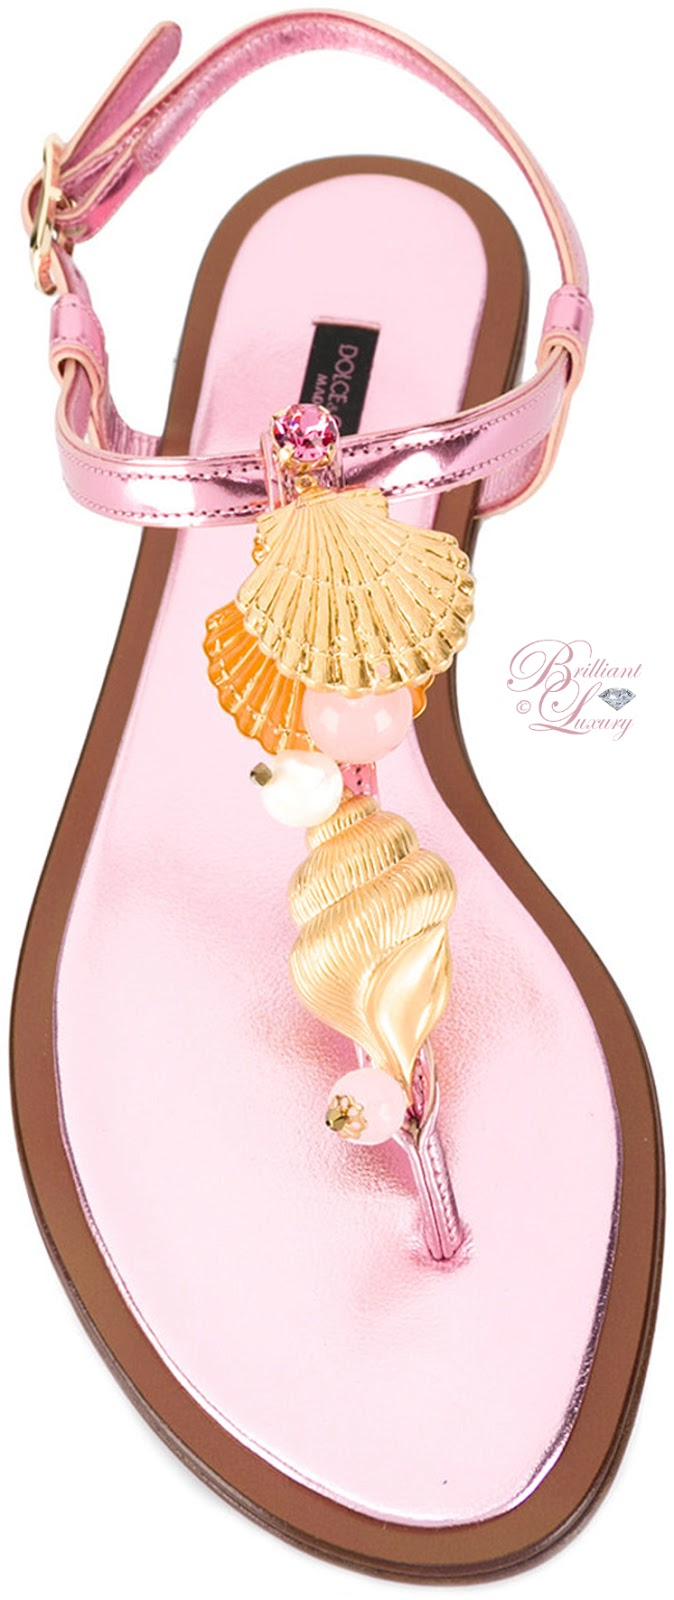 Brilliant Luxury ♦ Dolce & Gabbana Golden Shell Sandals